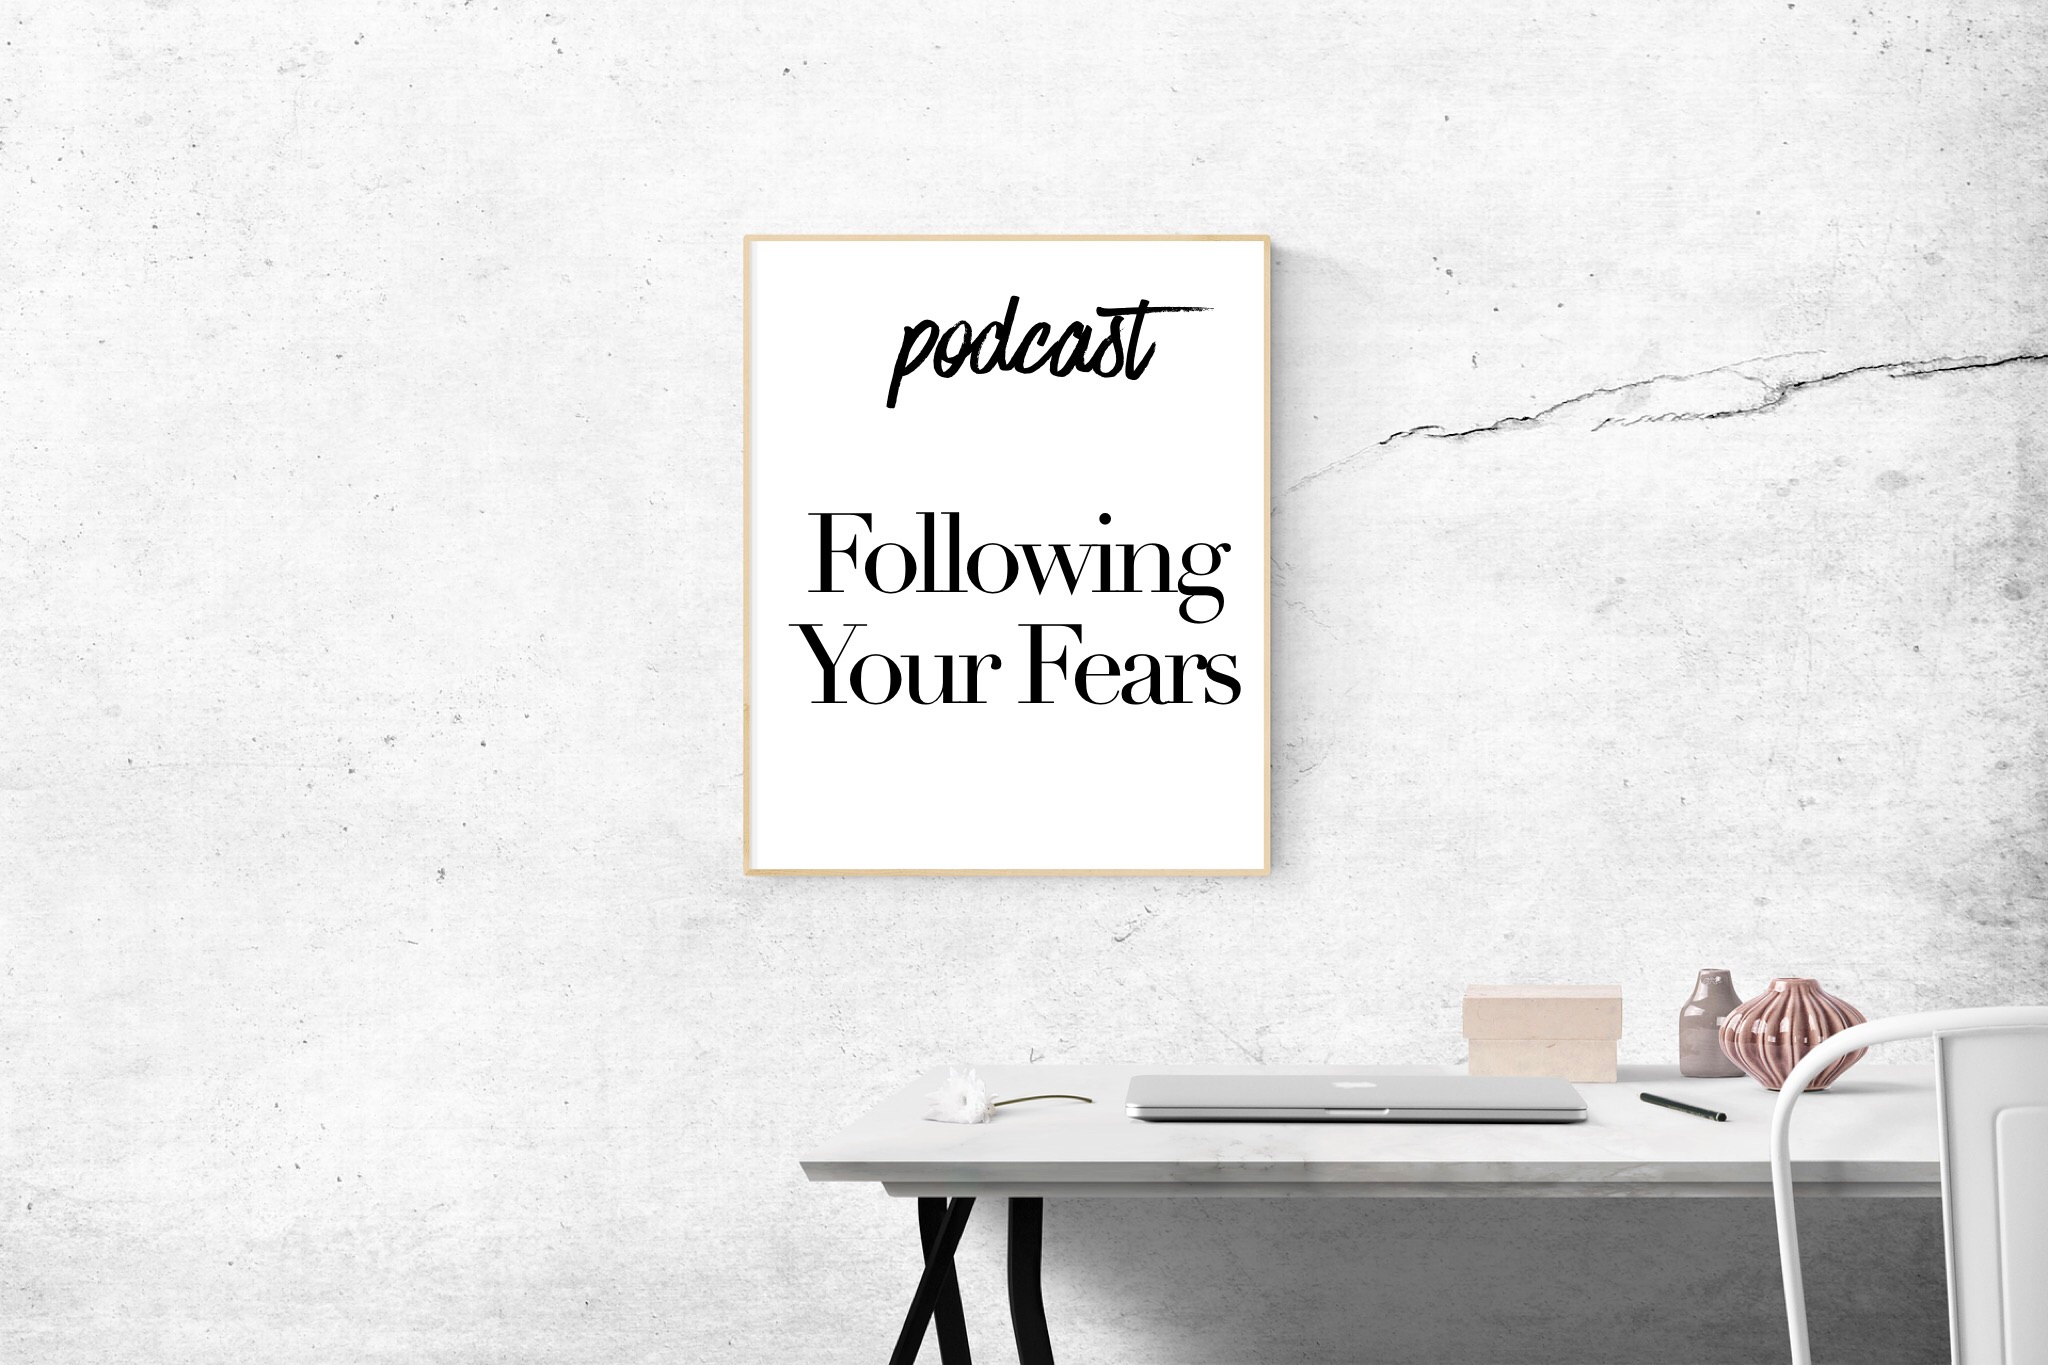 podcast_interview_follow_fear